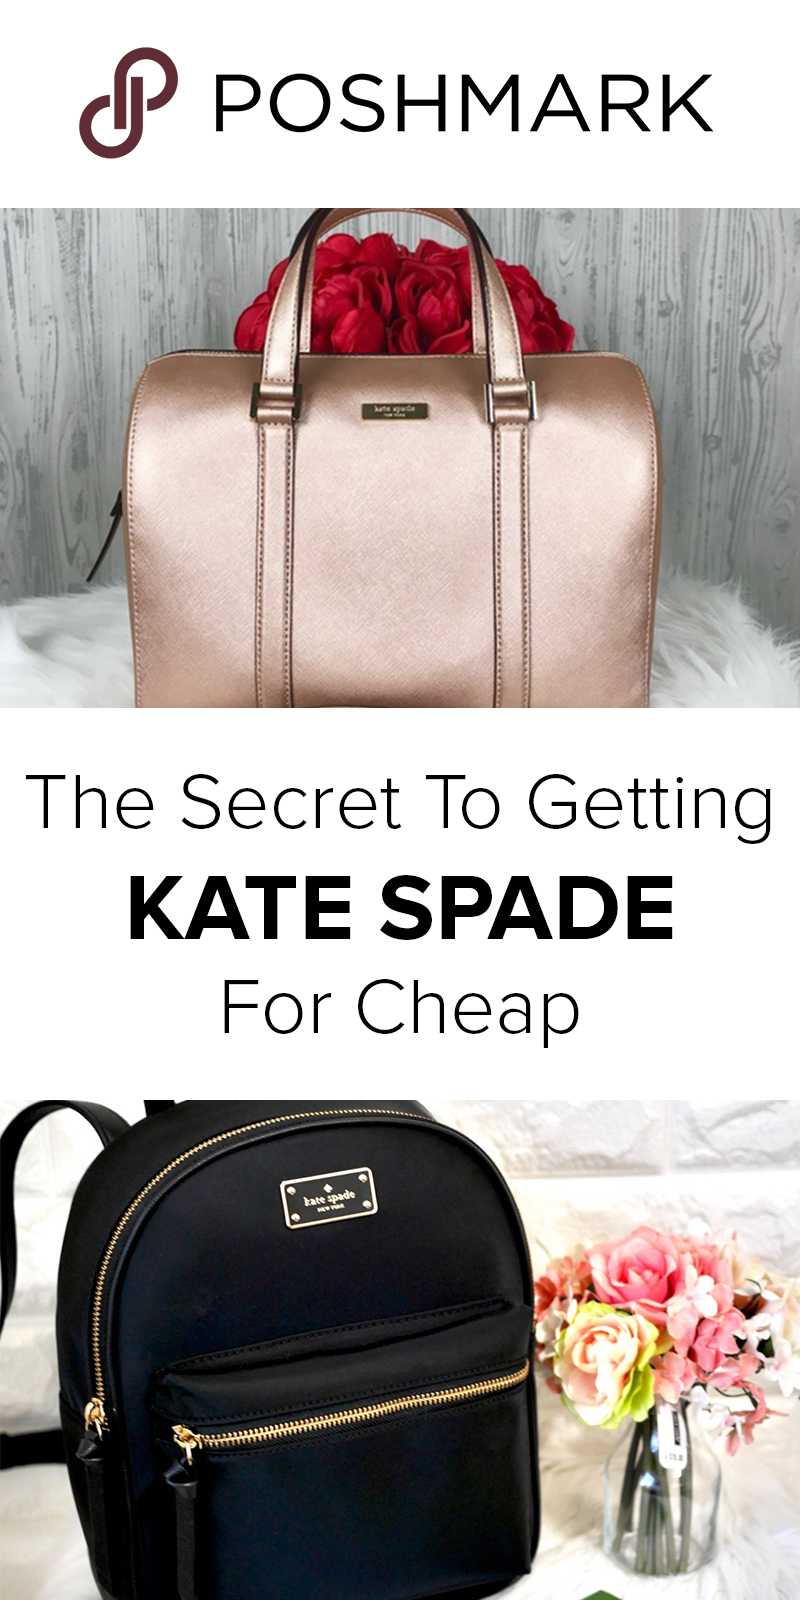 a6fa2935a6f0 Shop for Kate Spade at cheap prices on Poshmark. Download the app and start  shopping today!